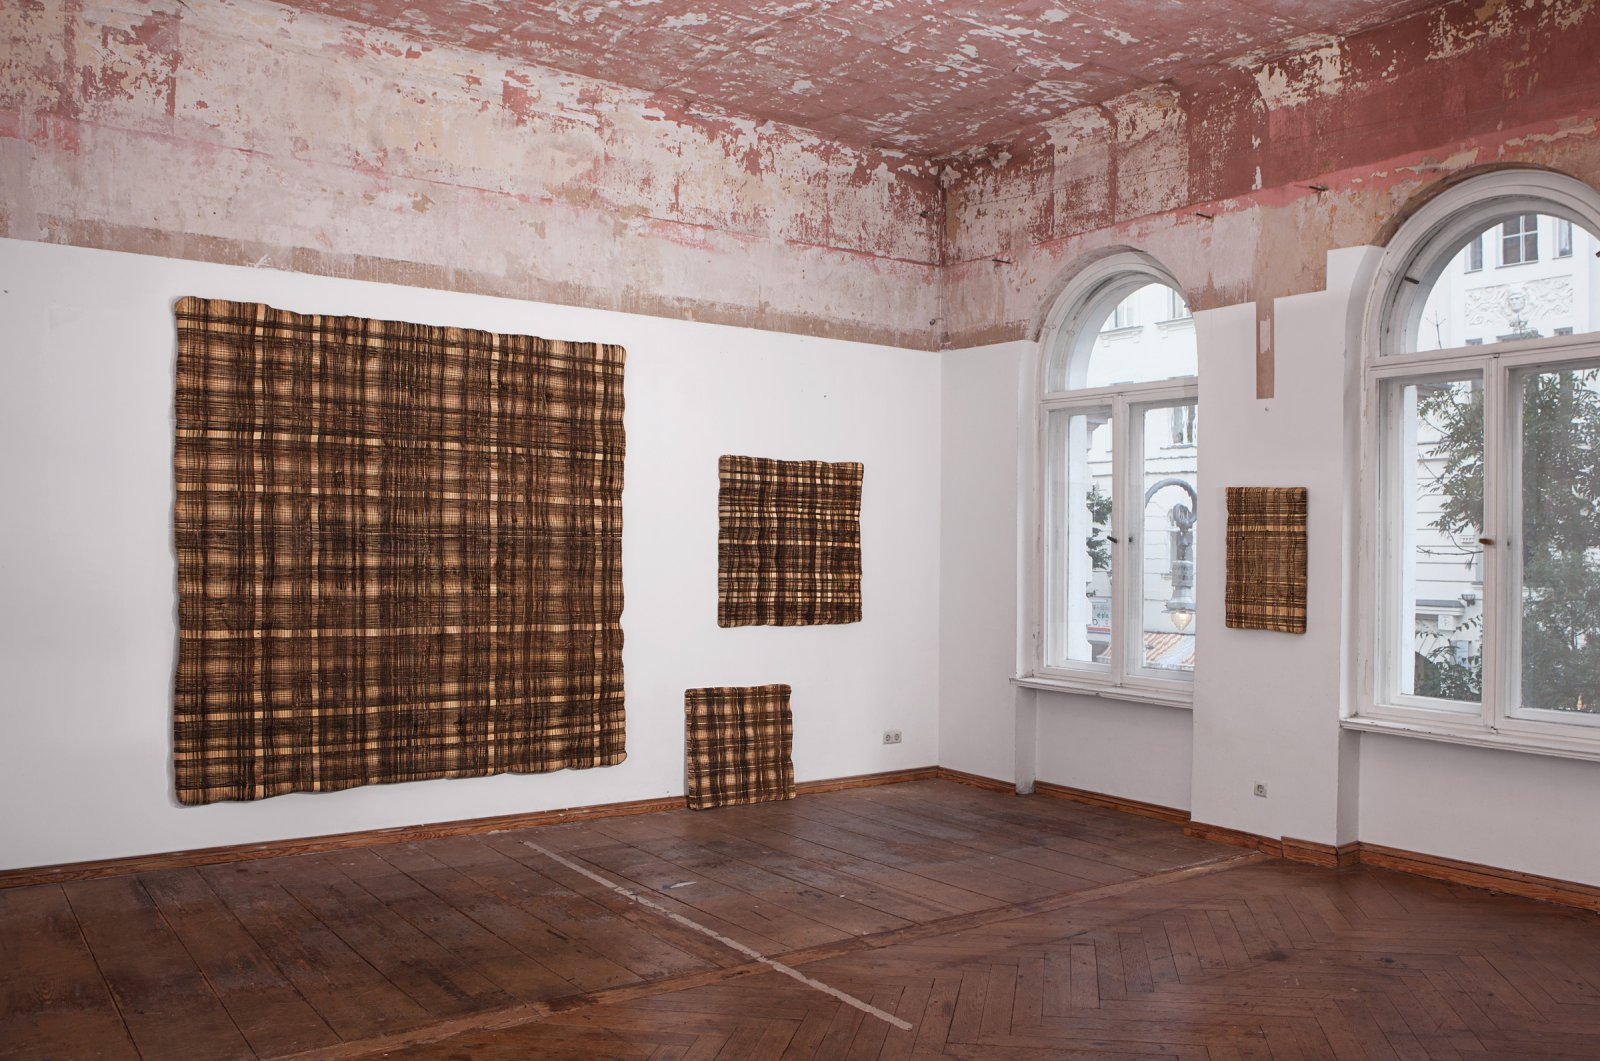 """A view of Mathias Hornung's """"Defragmentology"""" exhibition. (Photo Courtesy of Anna Laudel)"""